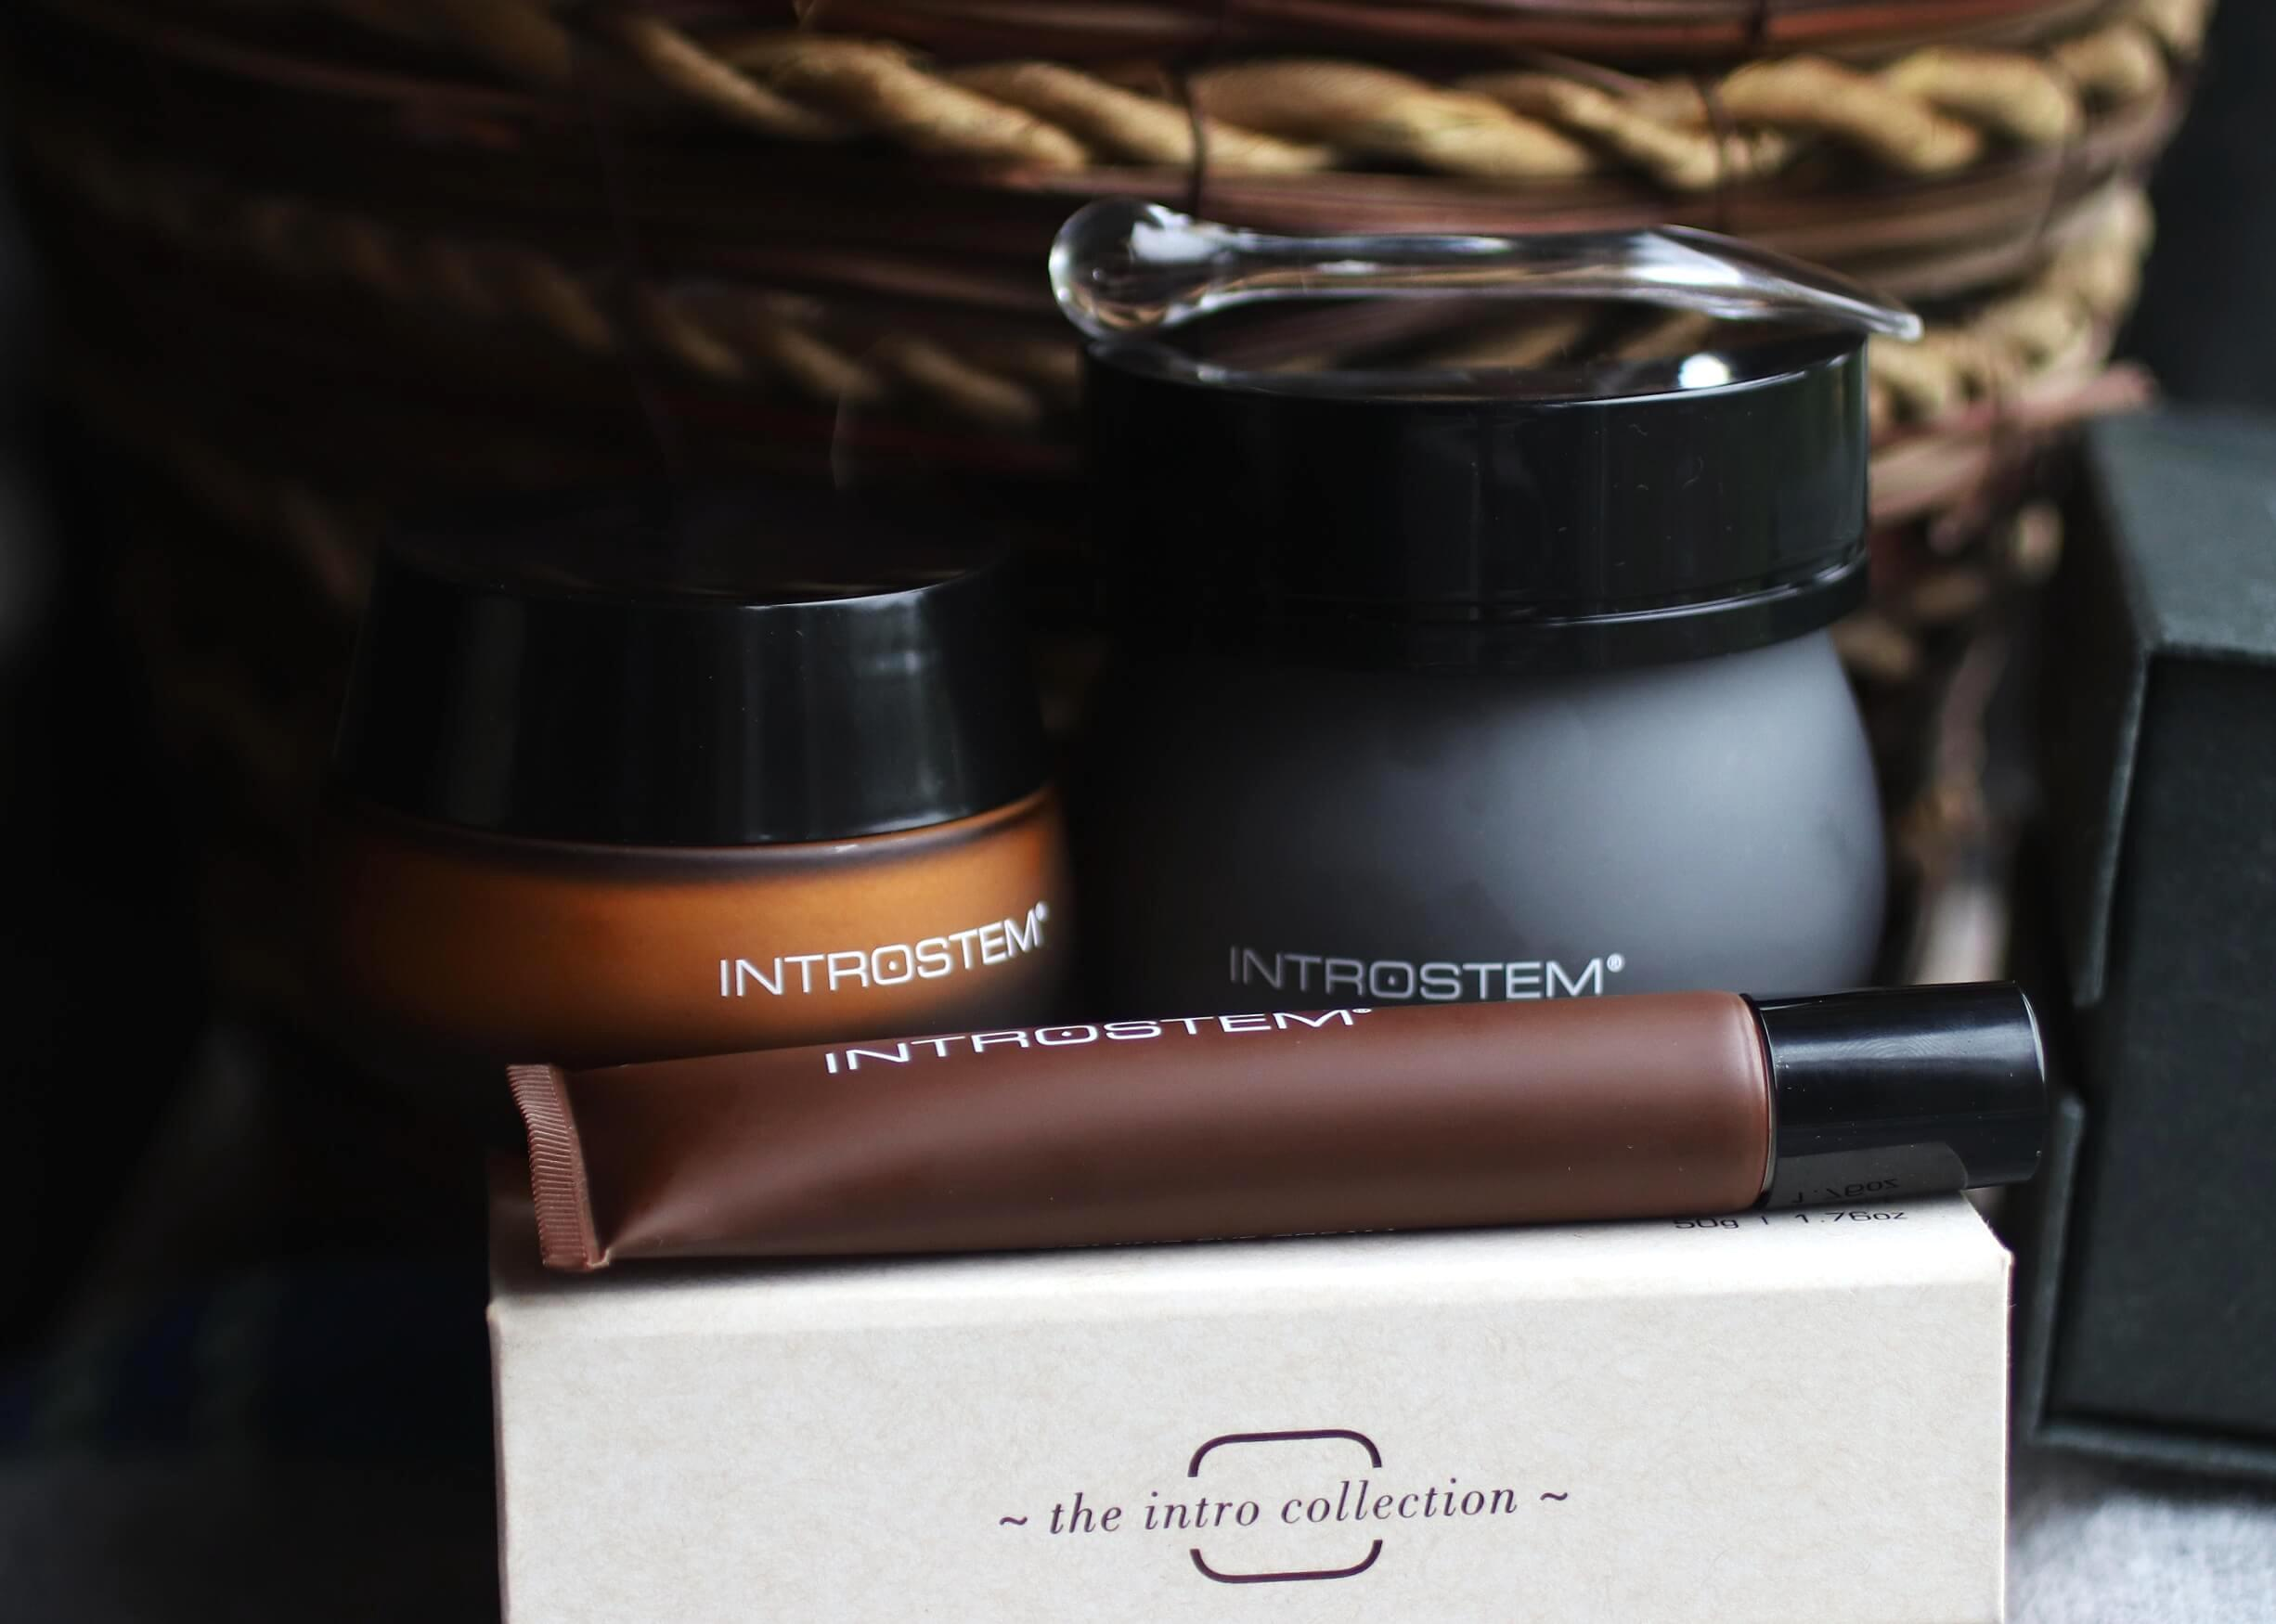 Introstem skincare review